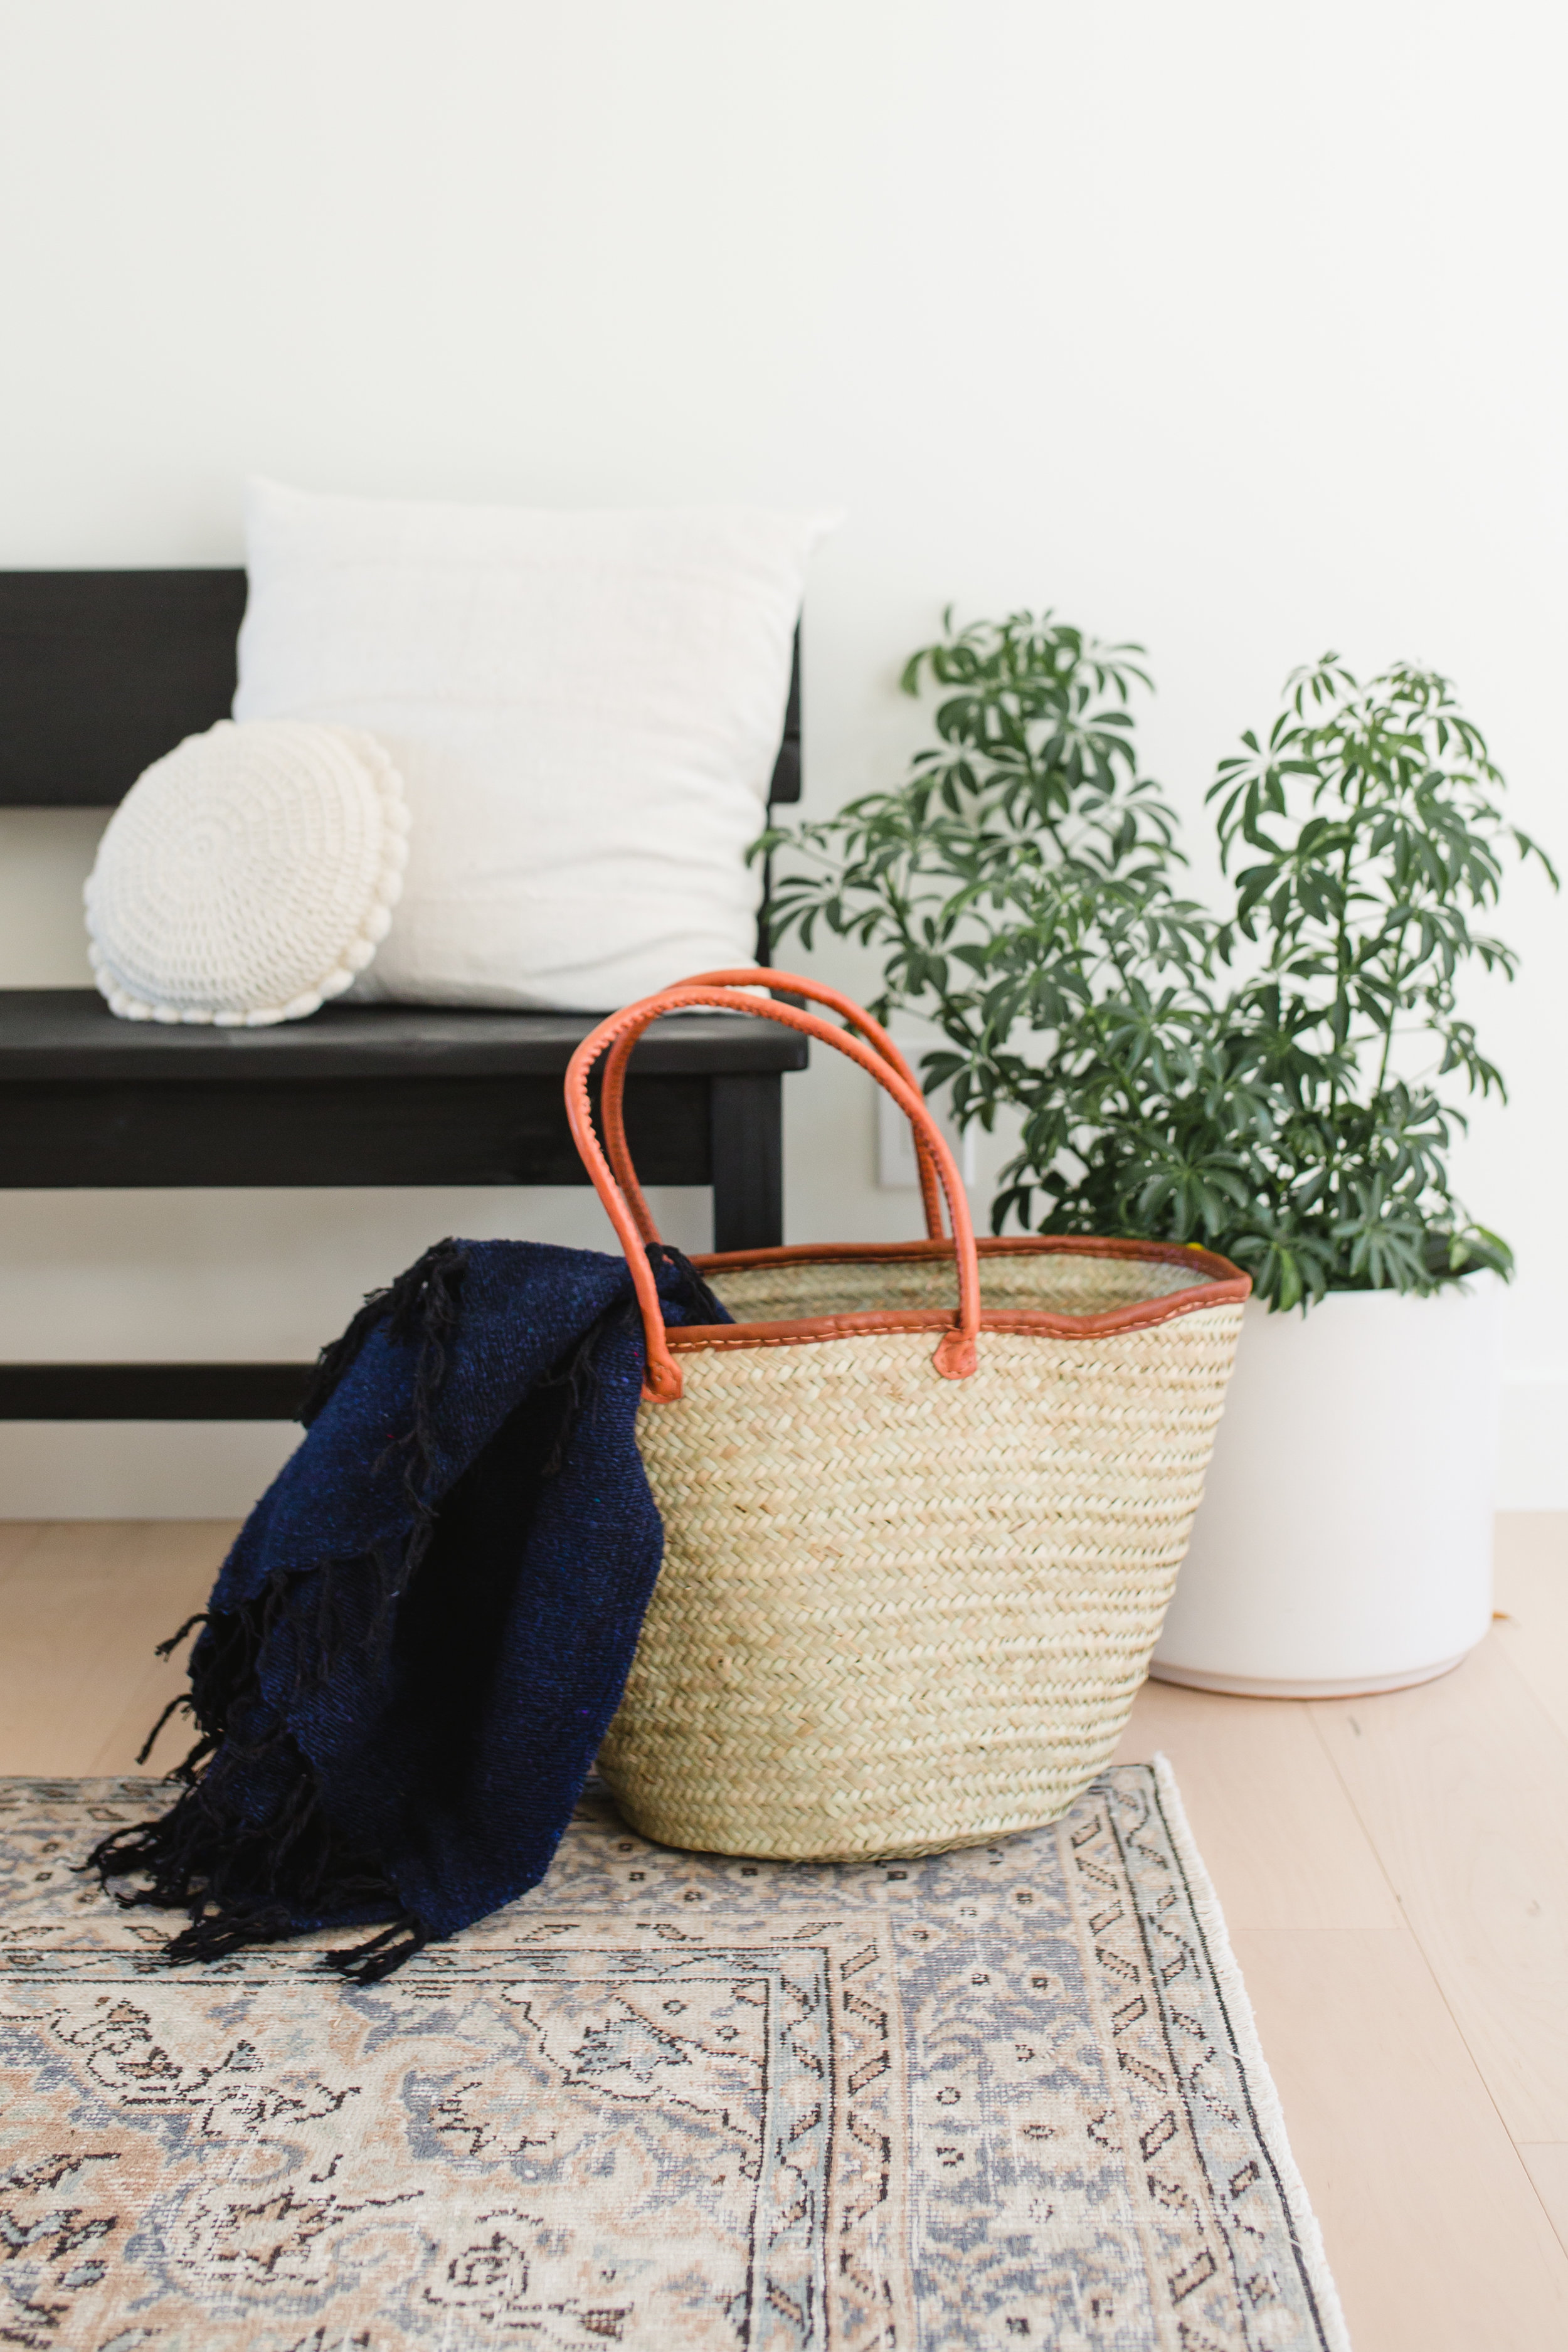 Baskets For Storage - You can never have too many! These are great to leave on your patio to store rolled up blankets in.